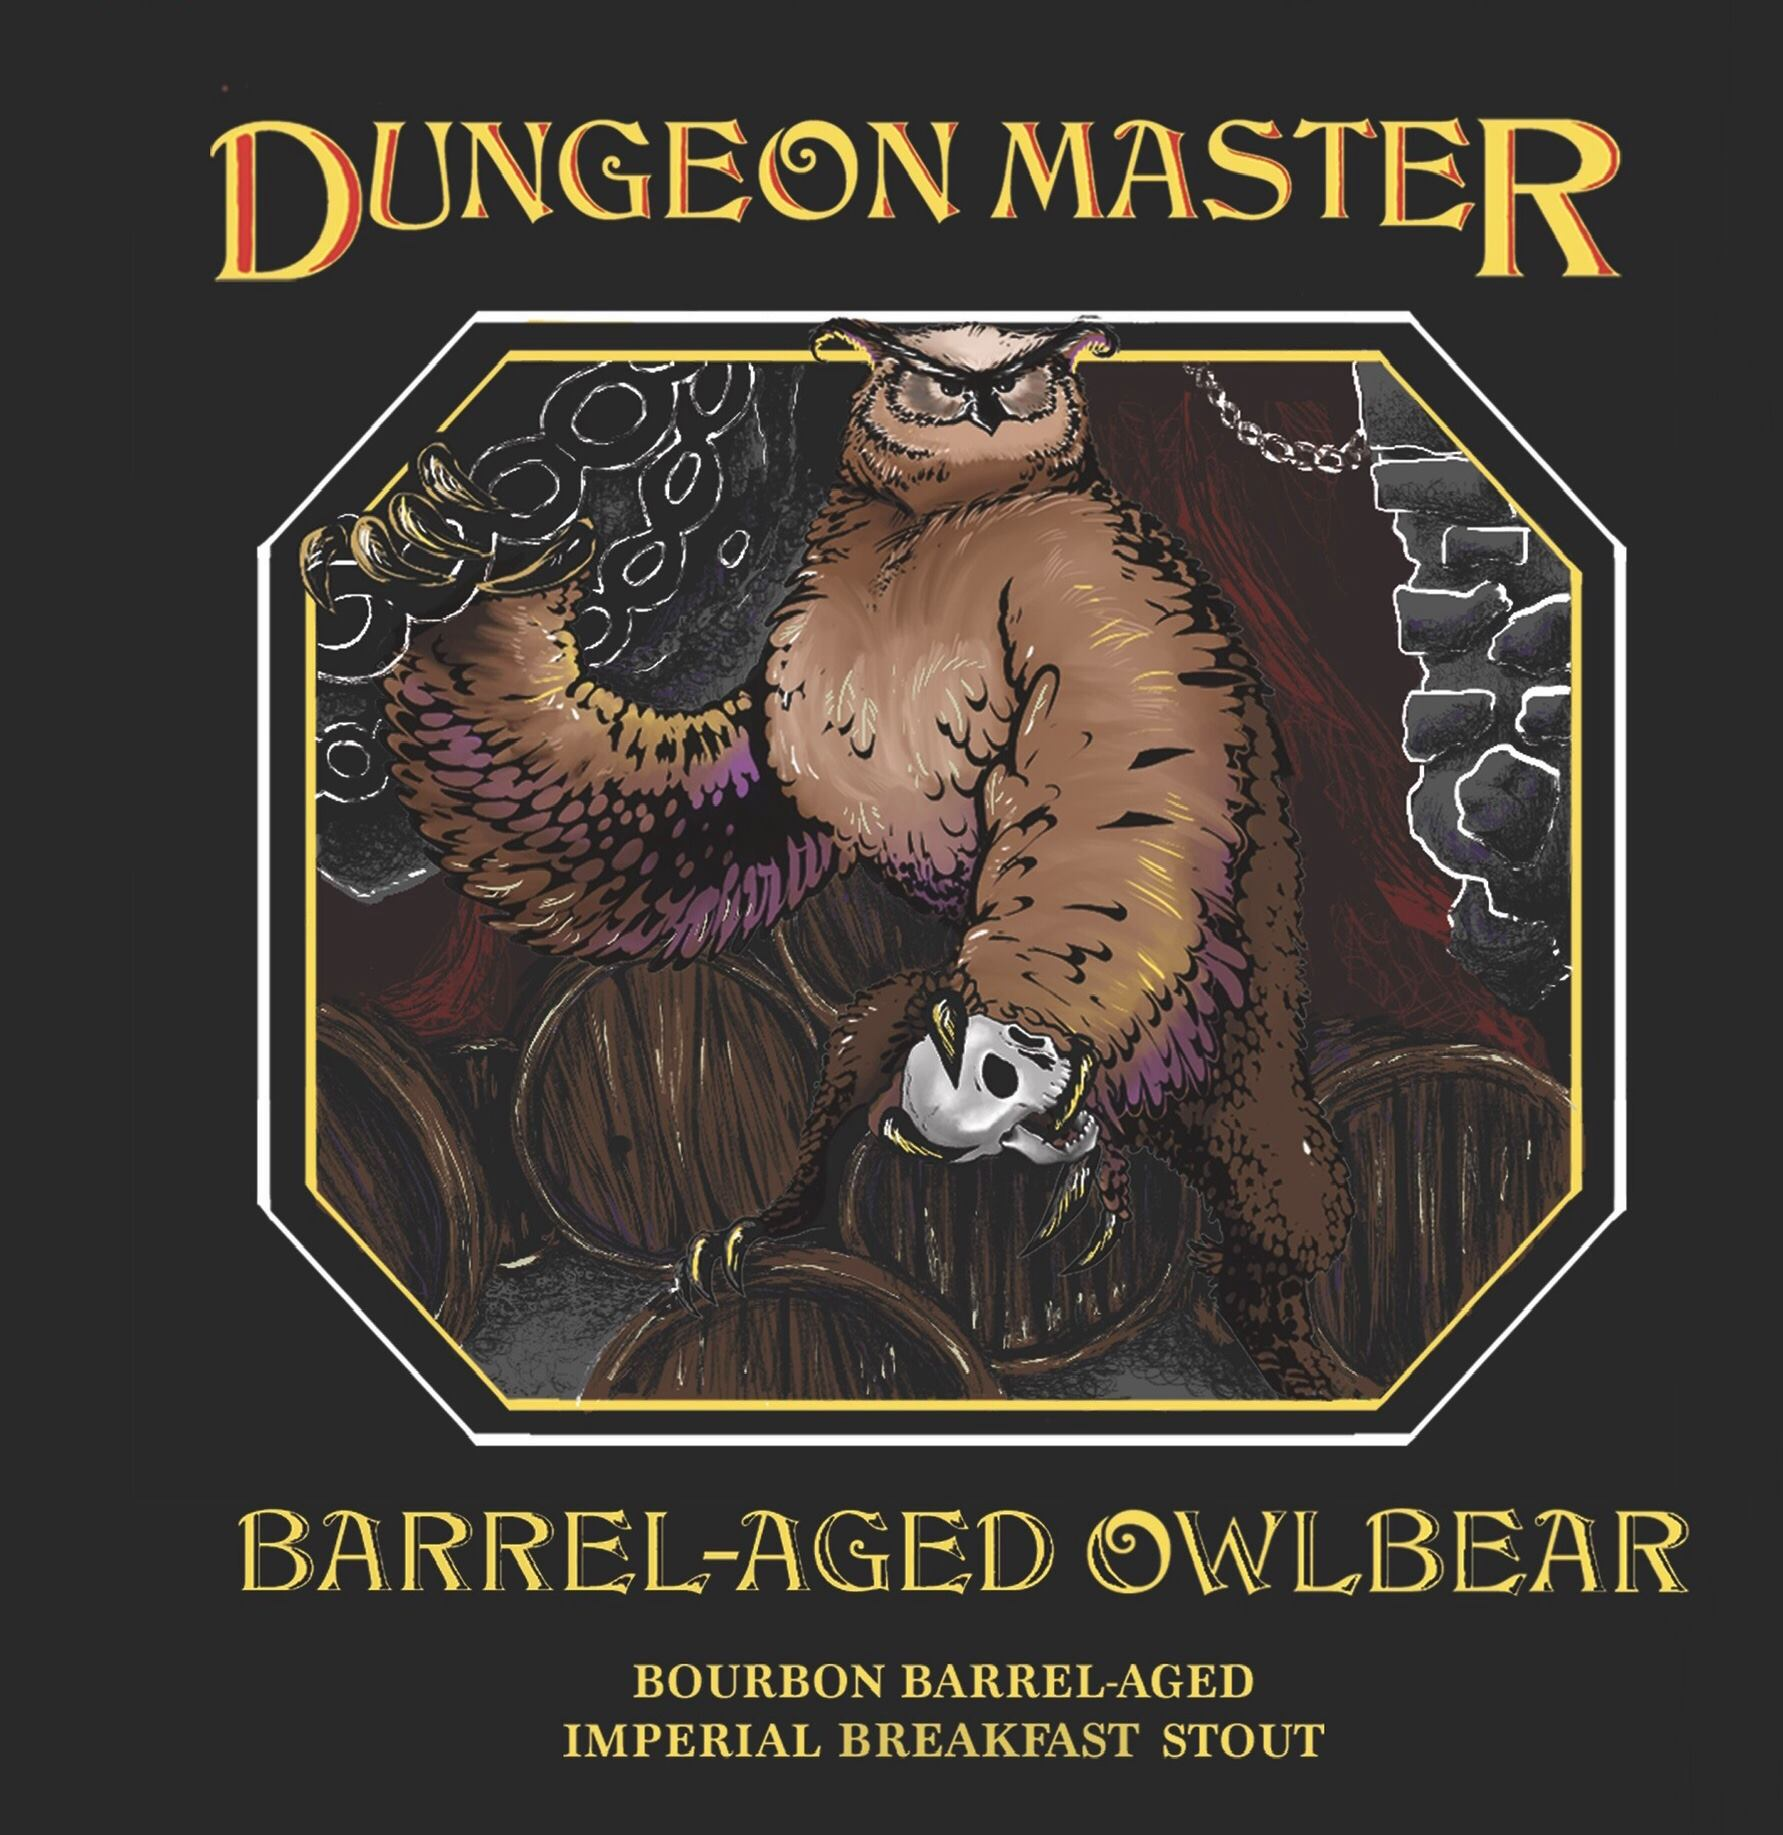 Logo for Barrel-Aged Owlbear, part of Miskatonic Brewing Company's Dungeon Master series